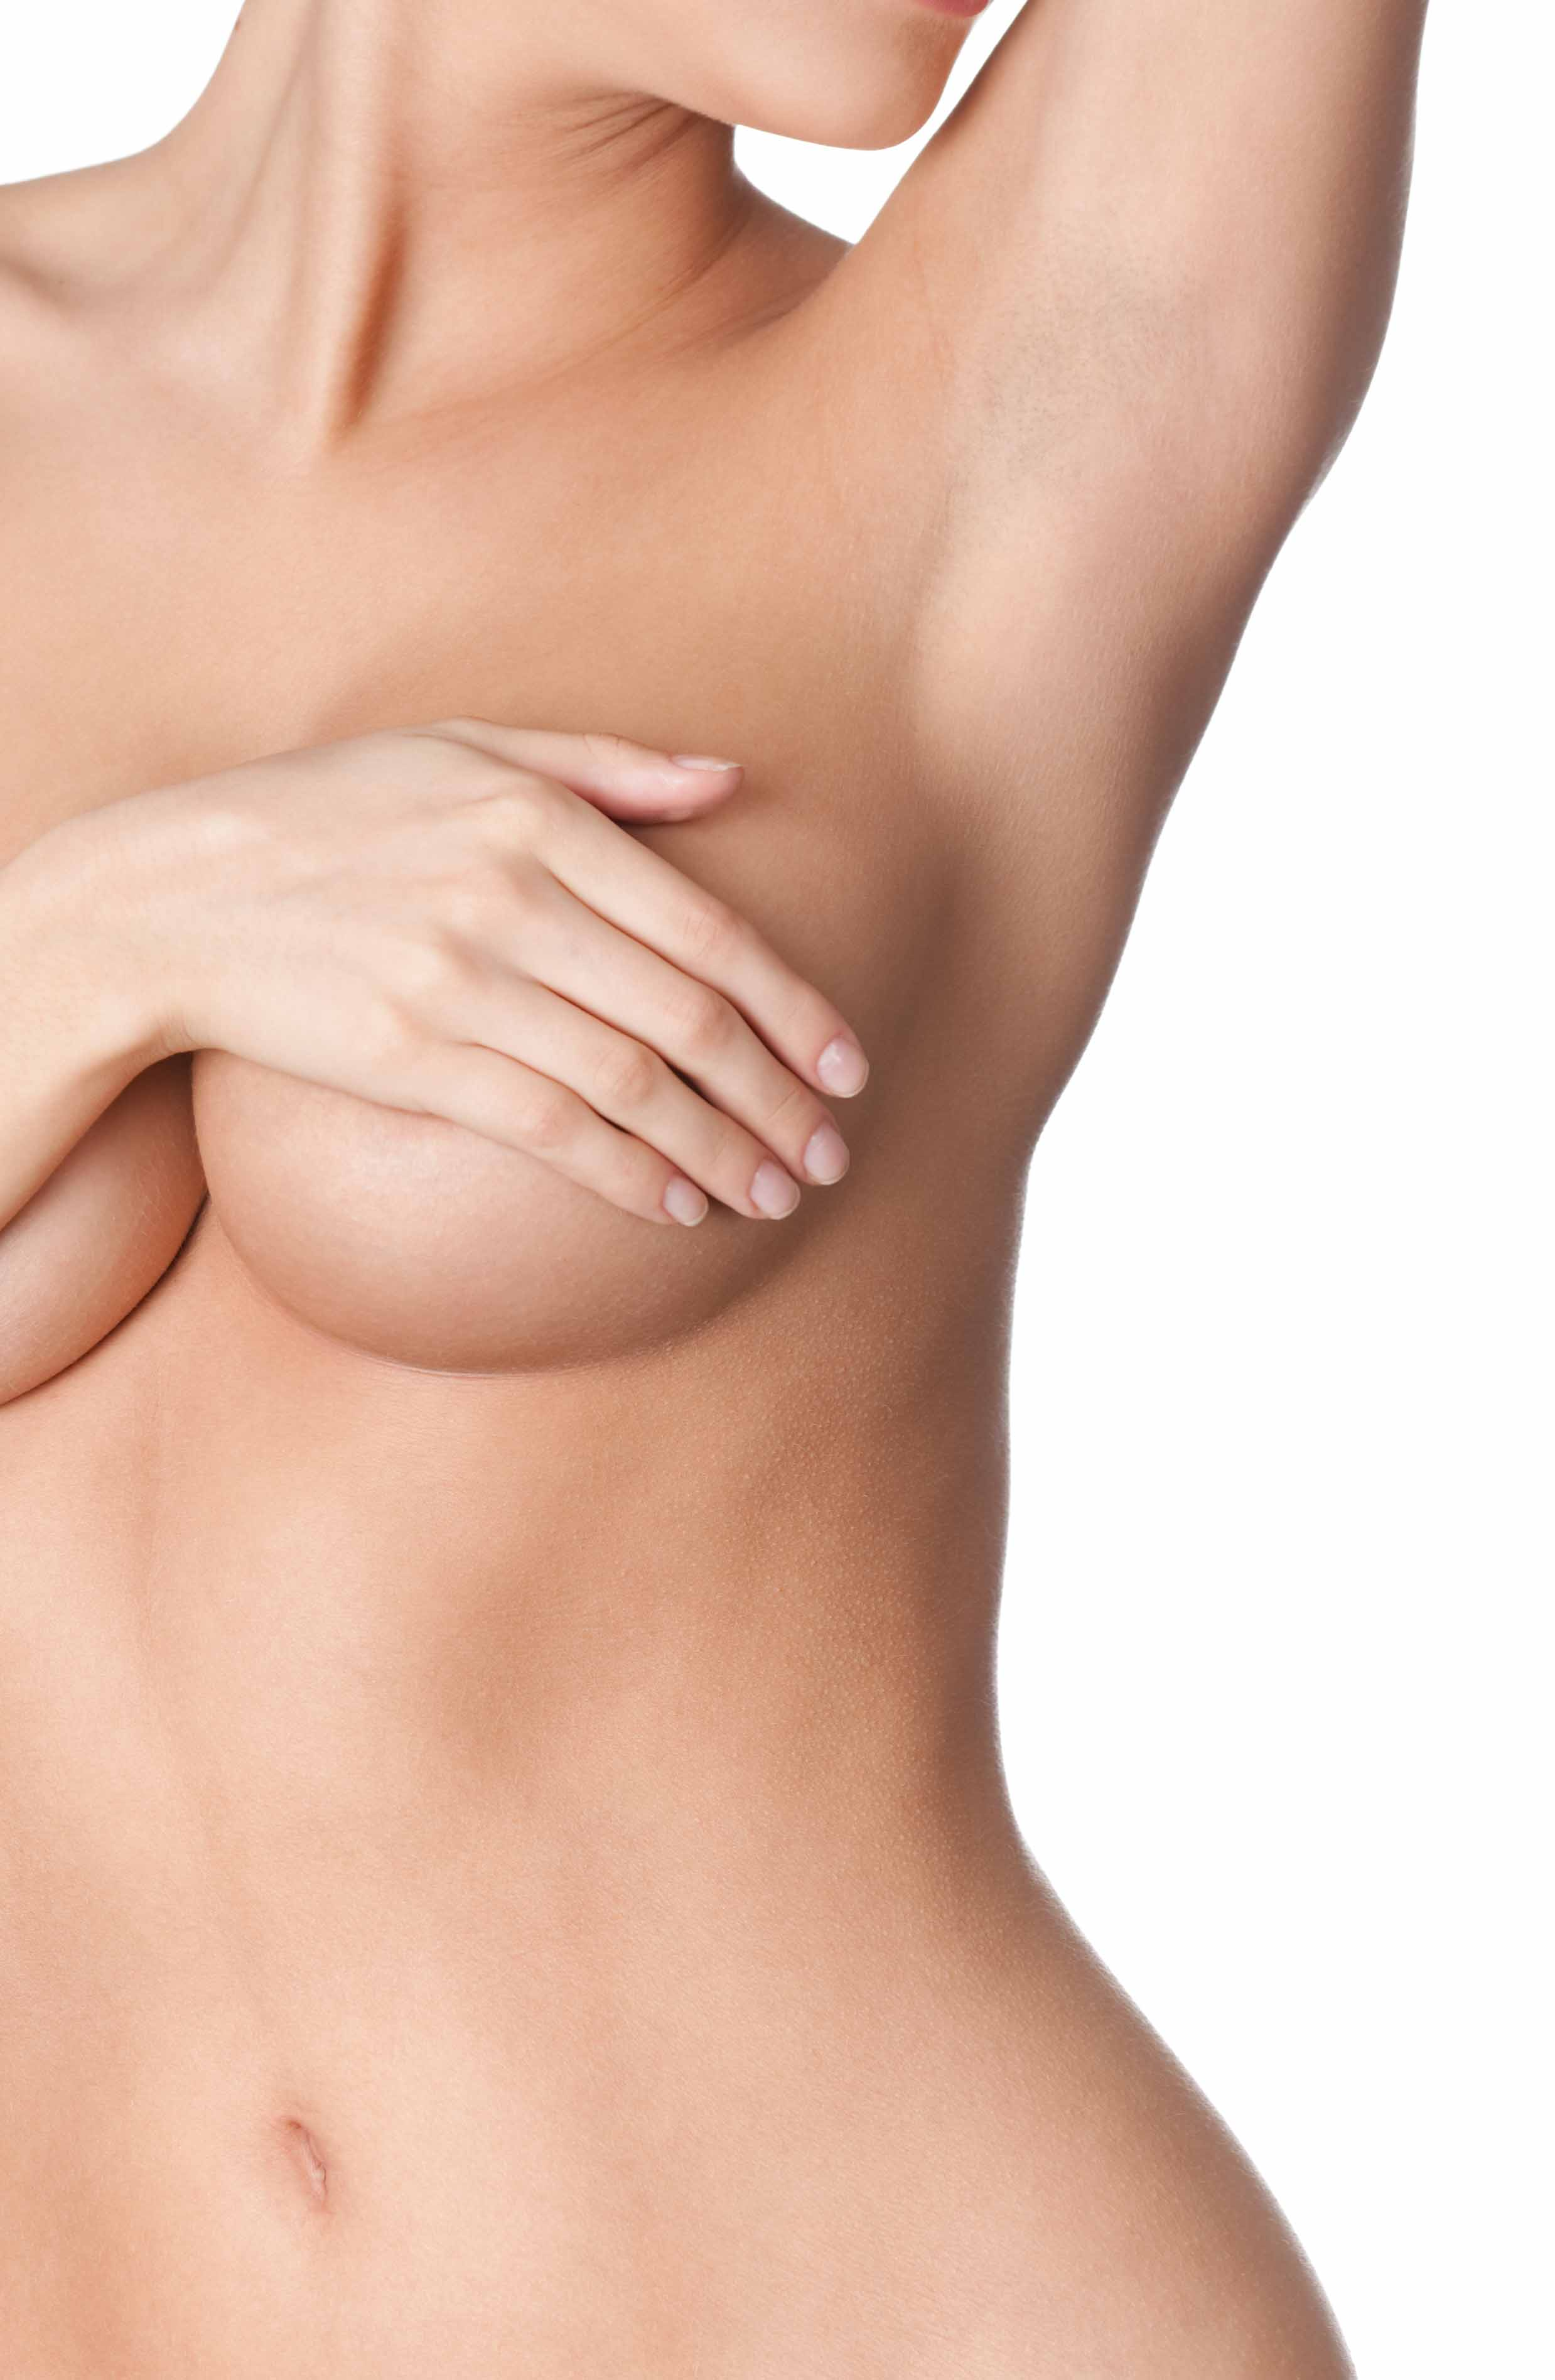 Breast Augmentation: What Are My First Steps?